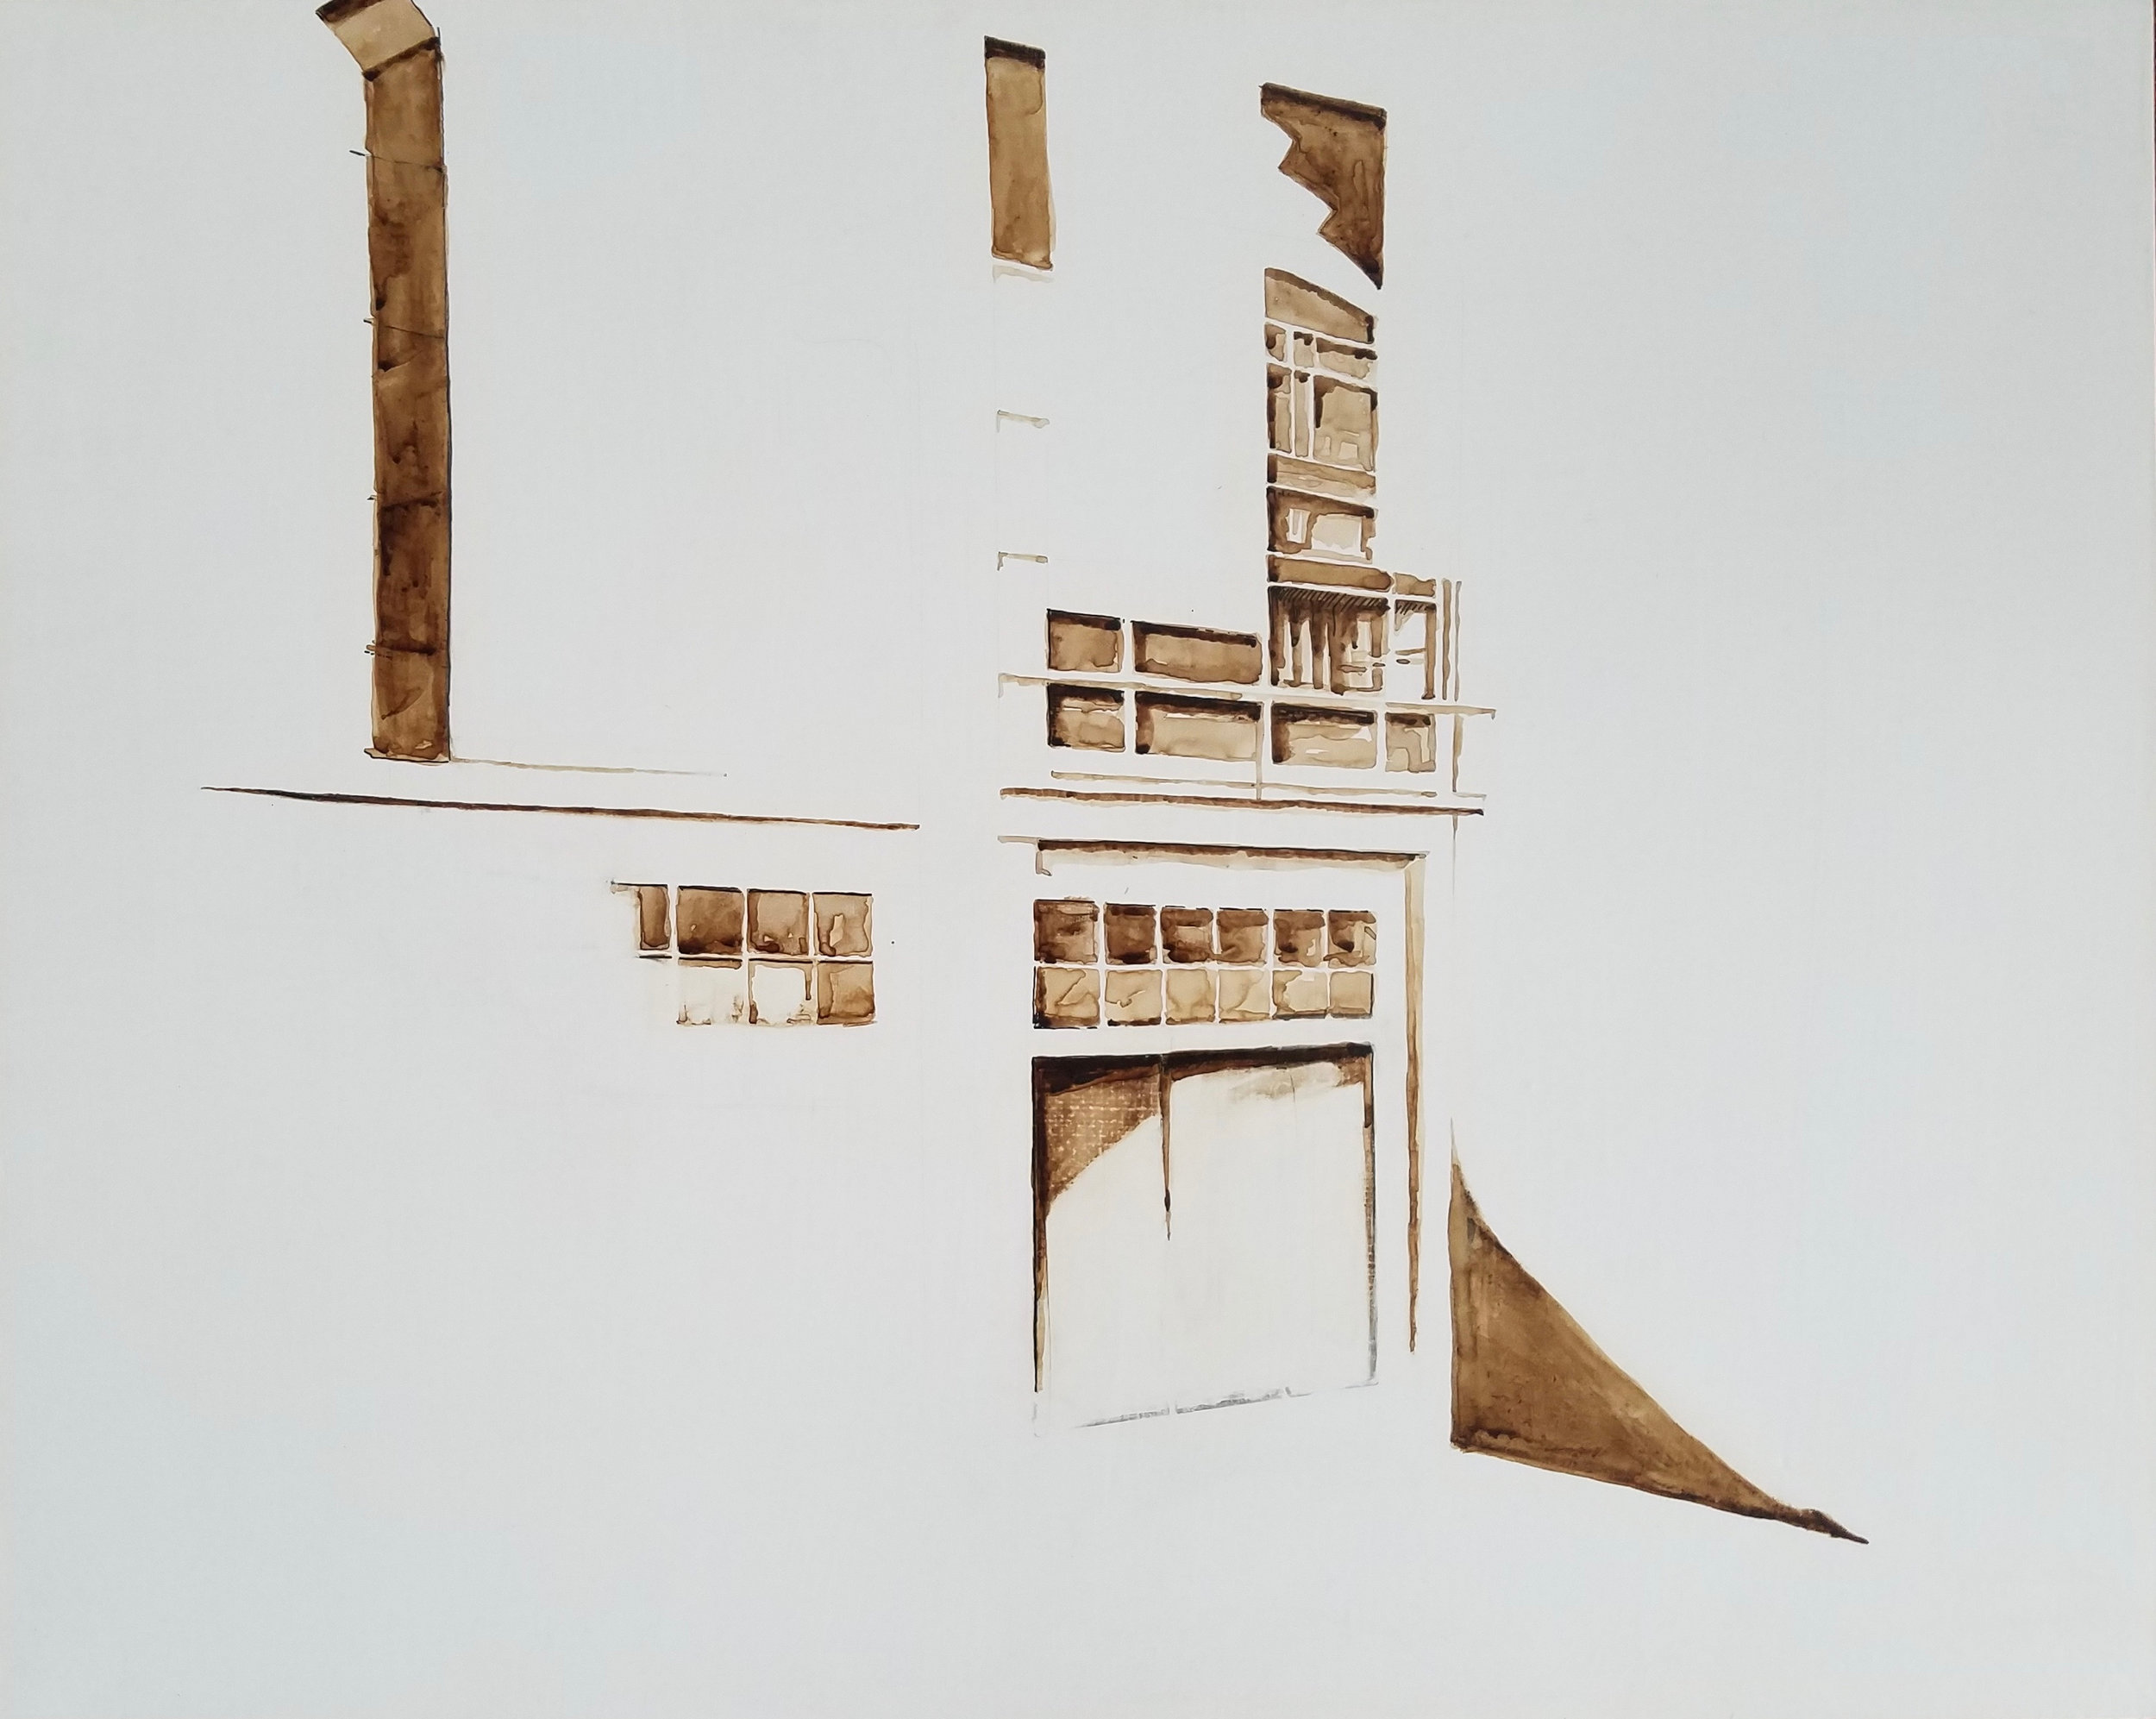 Margaret Noel   Façade II,  2017  Copperpoint and walnut ink on gessoed panel  Signed by the artist,  verso   16 x 20 inches